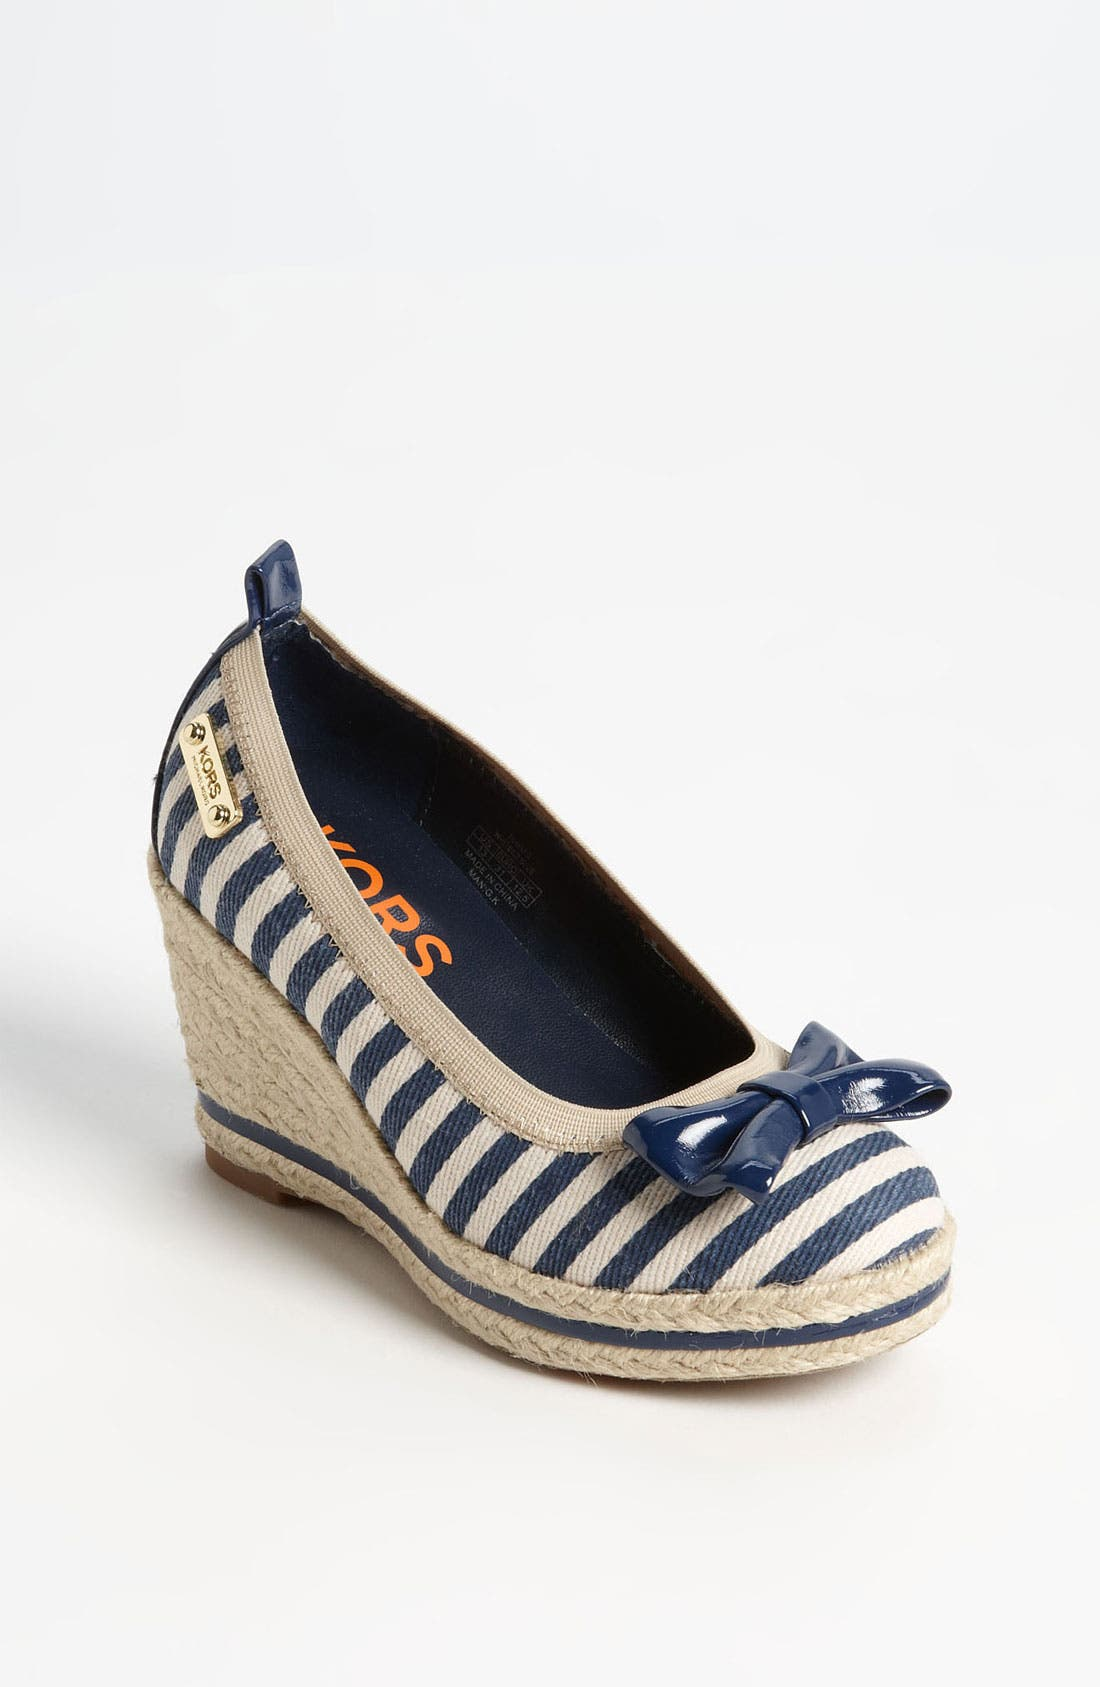 Alternate Image 1 Selected - KORS Michael Kors 'Tomato' Espadrille Slip-On (Little Kid & Big Kid)